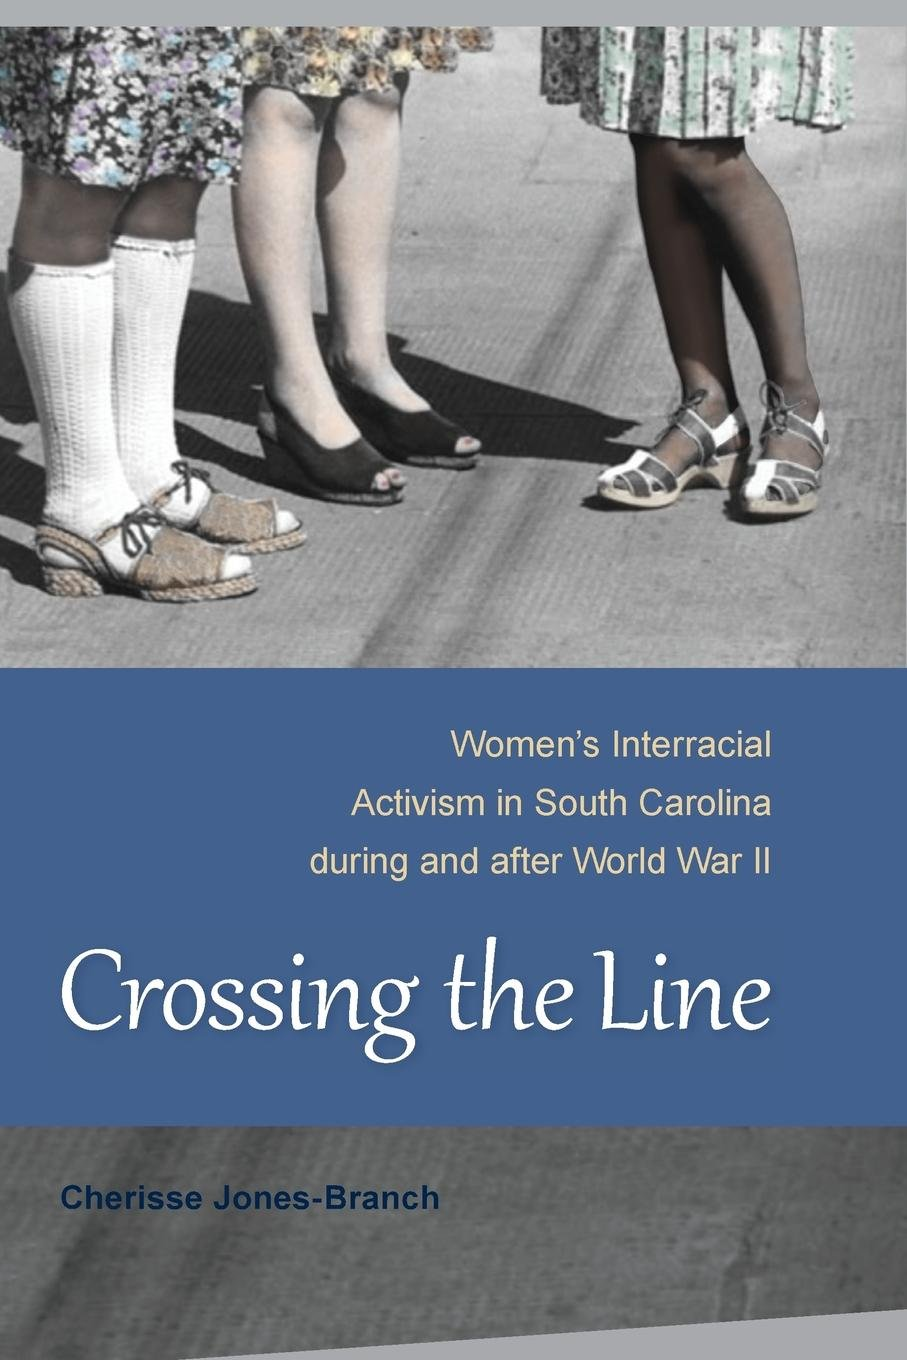 Crossing the Line: Women's Interracial Activism in South Carolina during and after World War II PDF